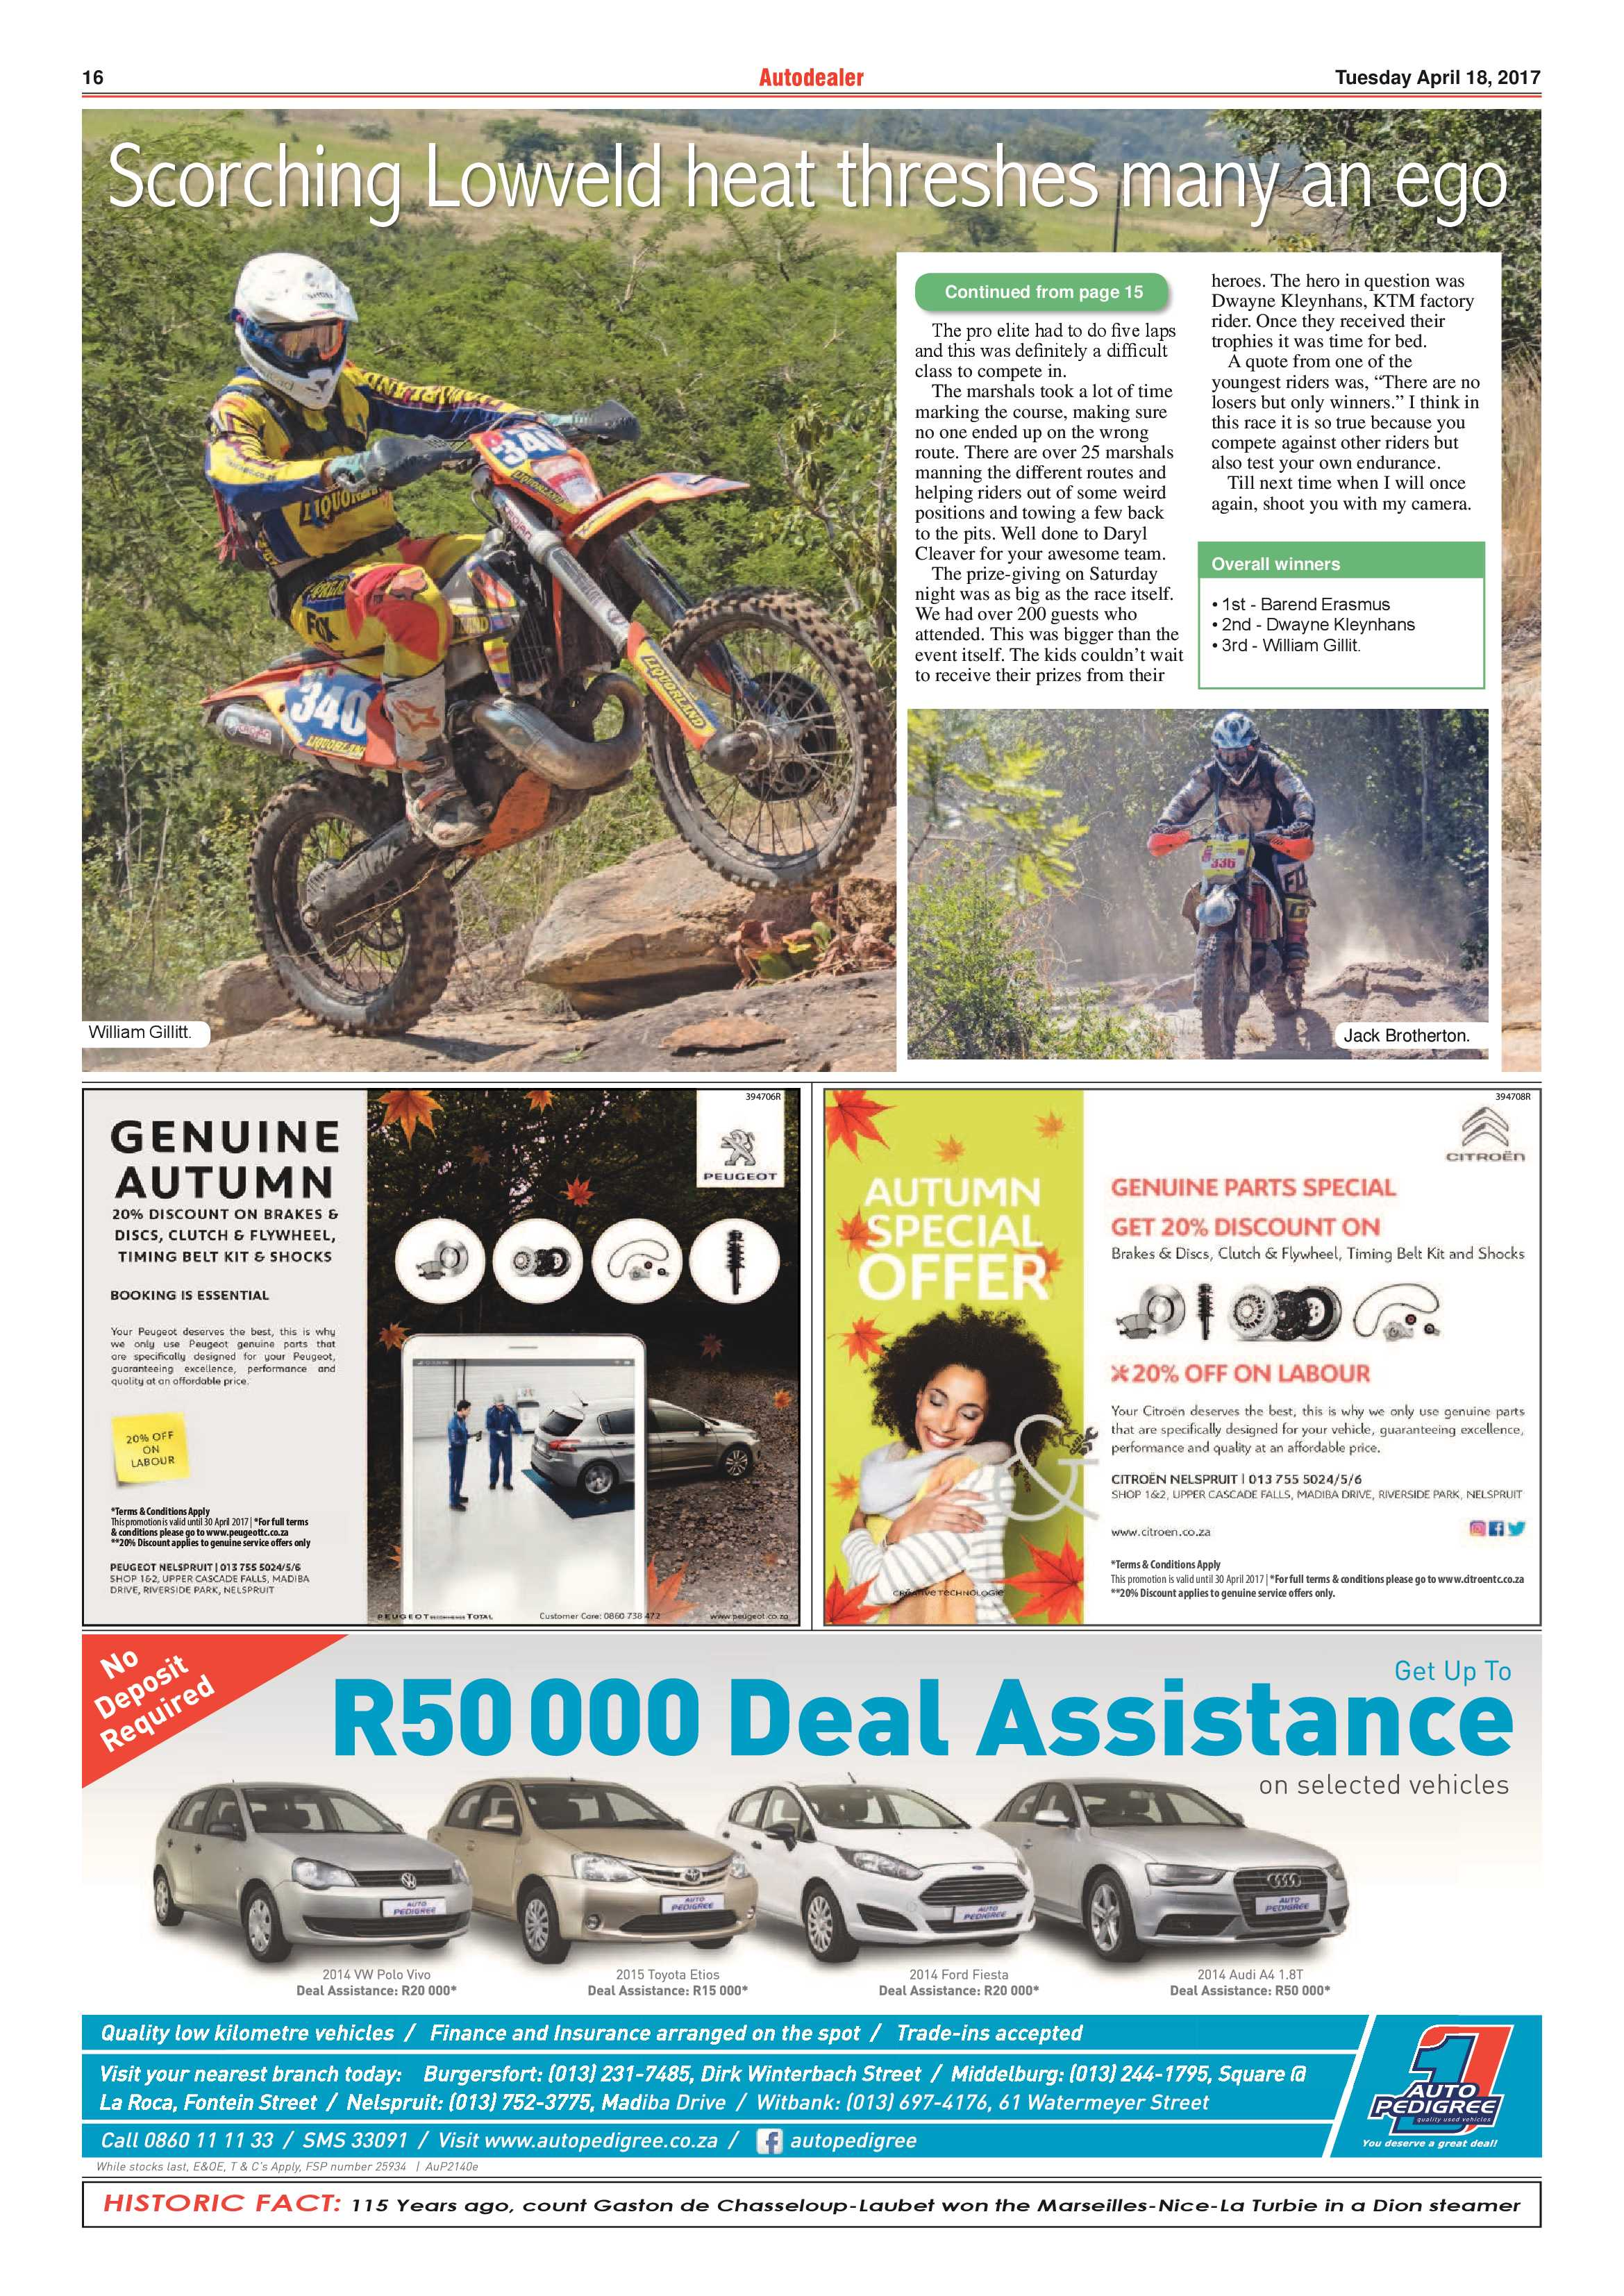 autodealer-18-april-2017-epapers-page-16